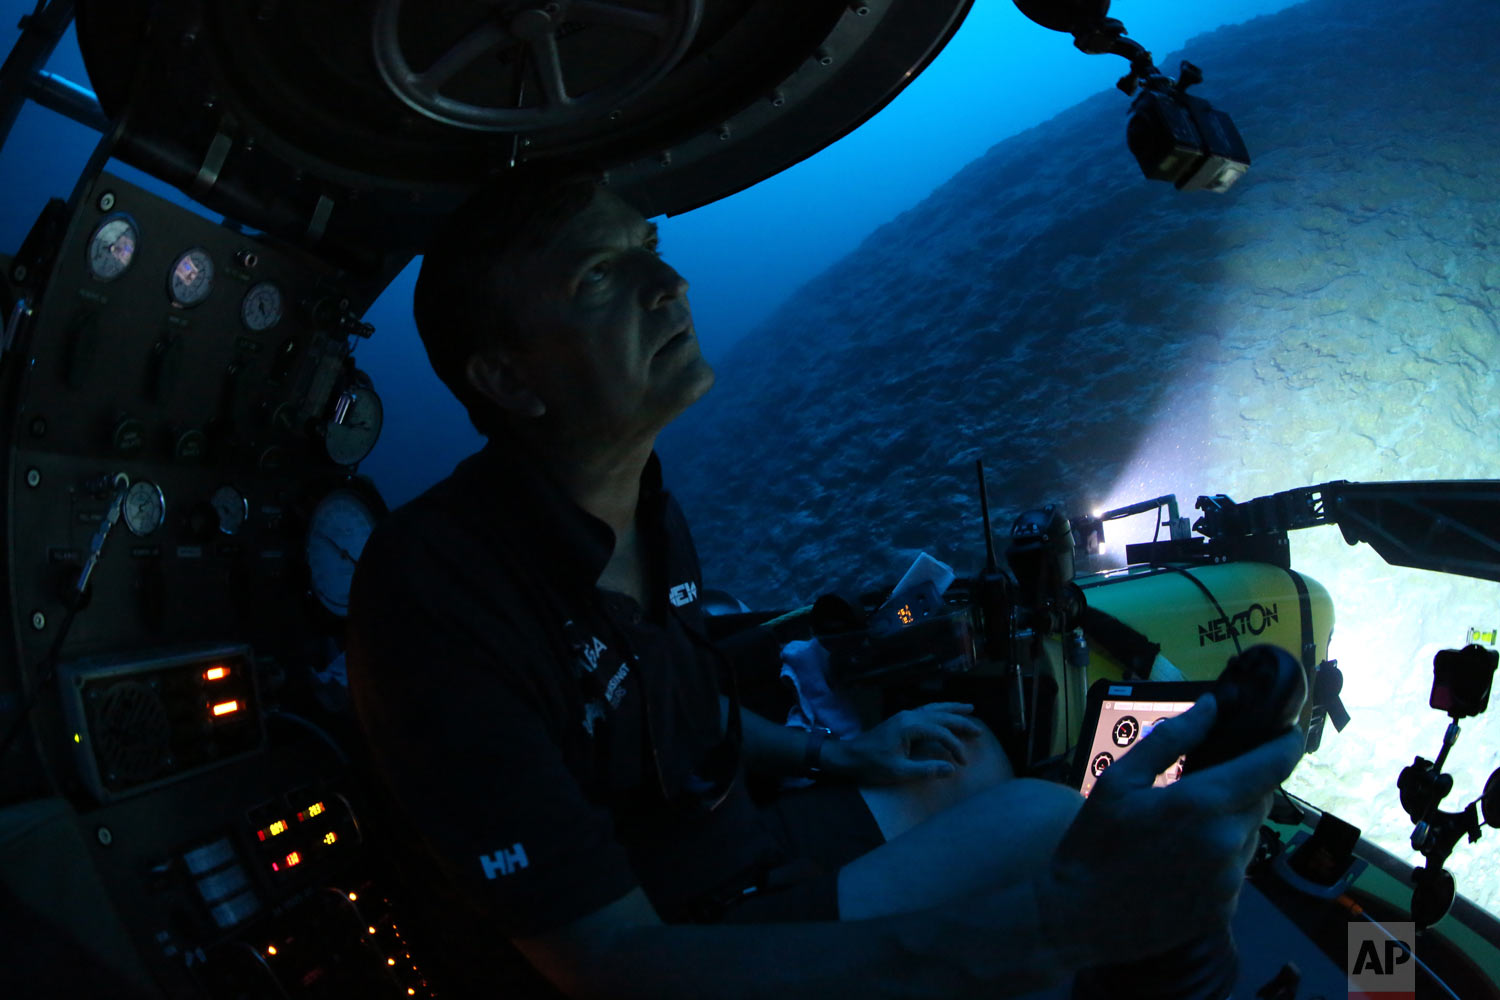 Aquanaut Robert Carmichael looks out of the submersible as he navigates strong currents during a dive to 400 feet below the surface on April 8, 2019. (AP Photo/David Keyton)